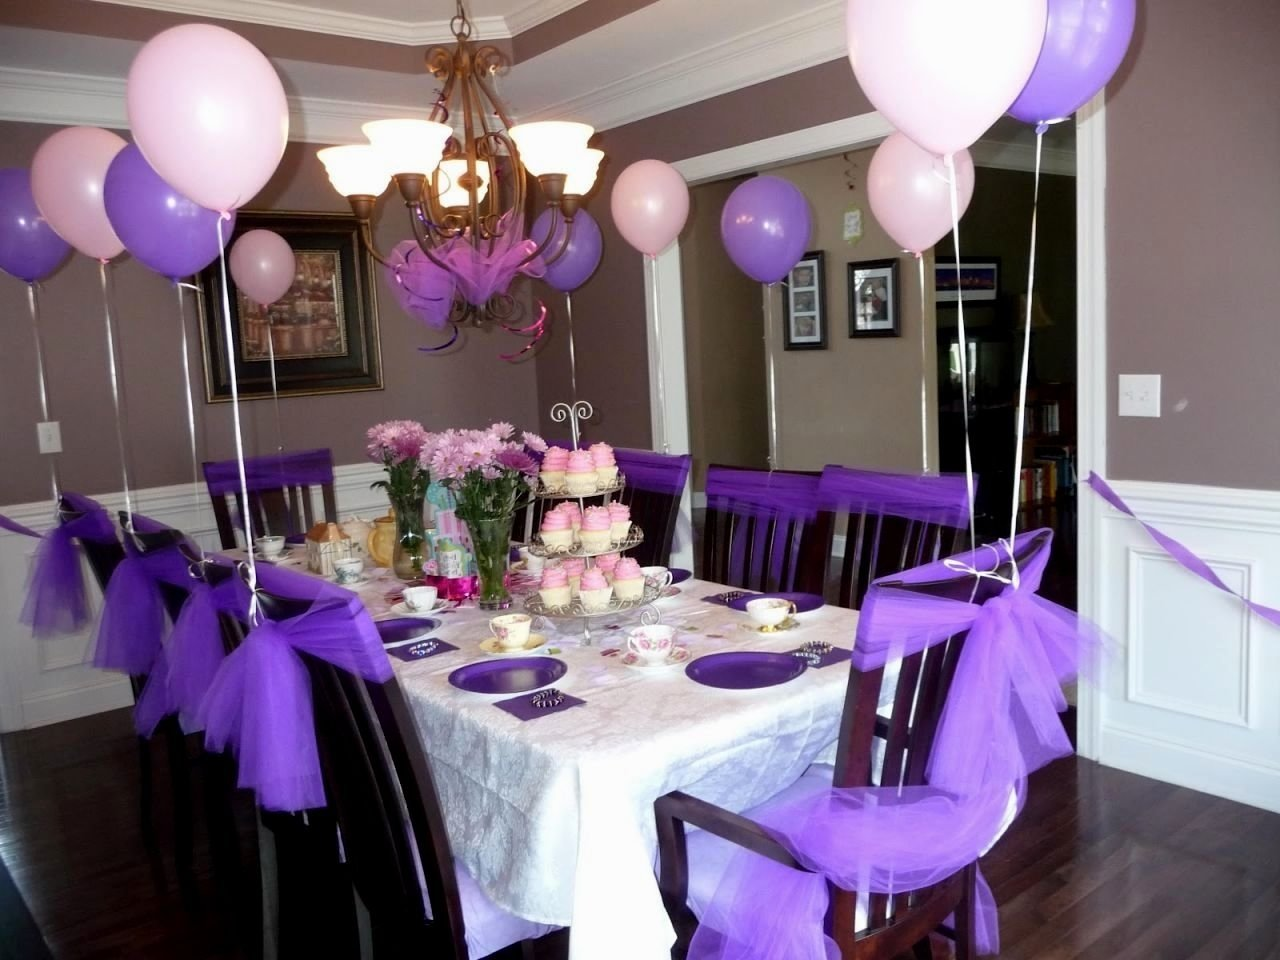 10 Famous Birthday Decoration Ideas For Adults party ideas adults theme food college coriver homes 86881 5 2020